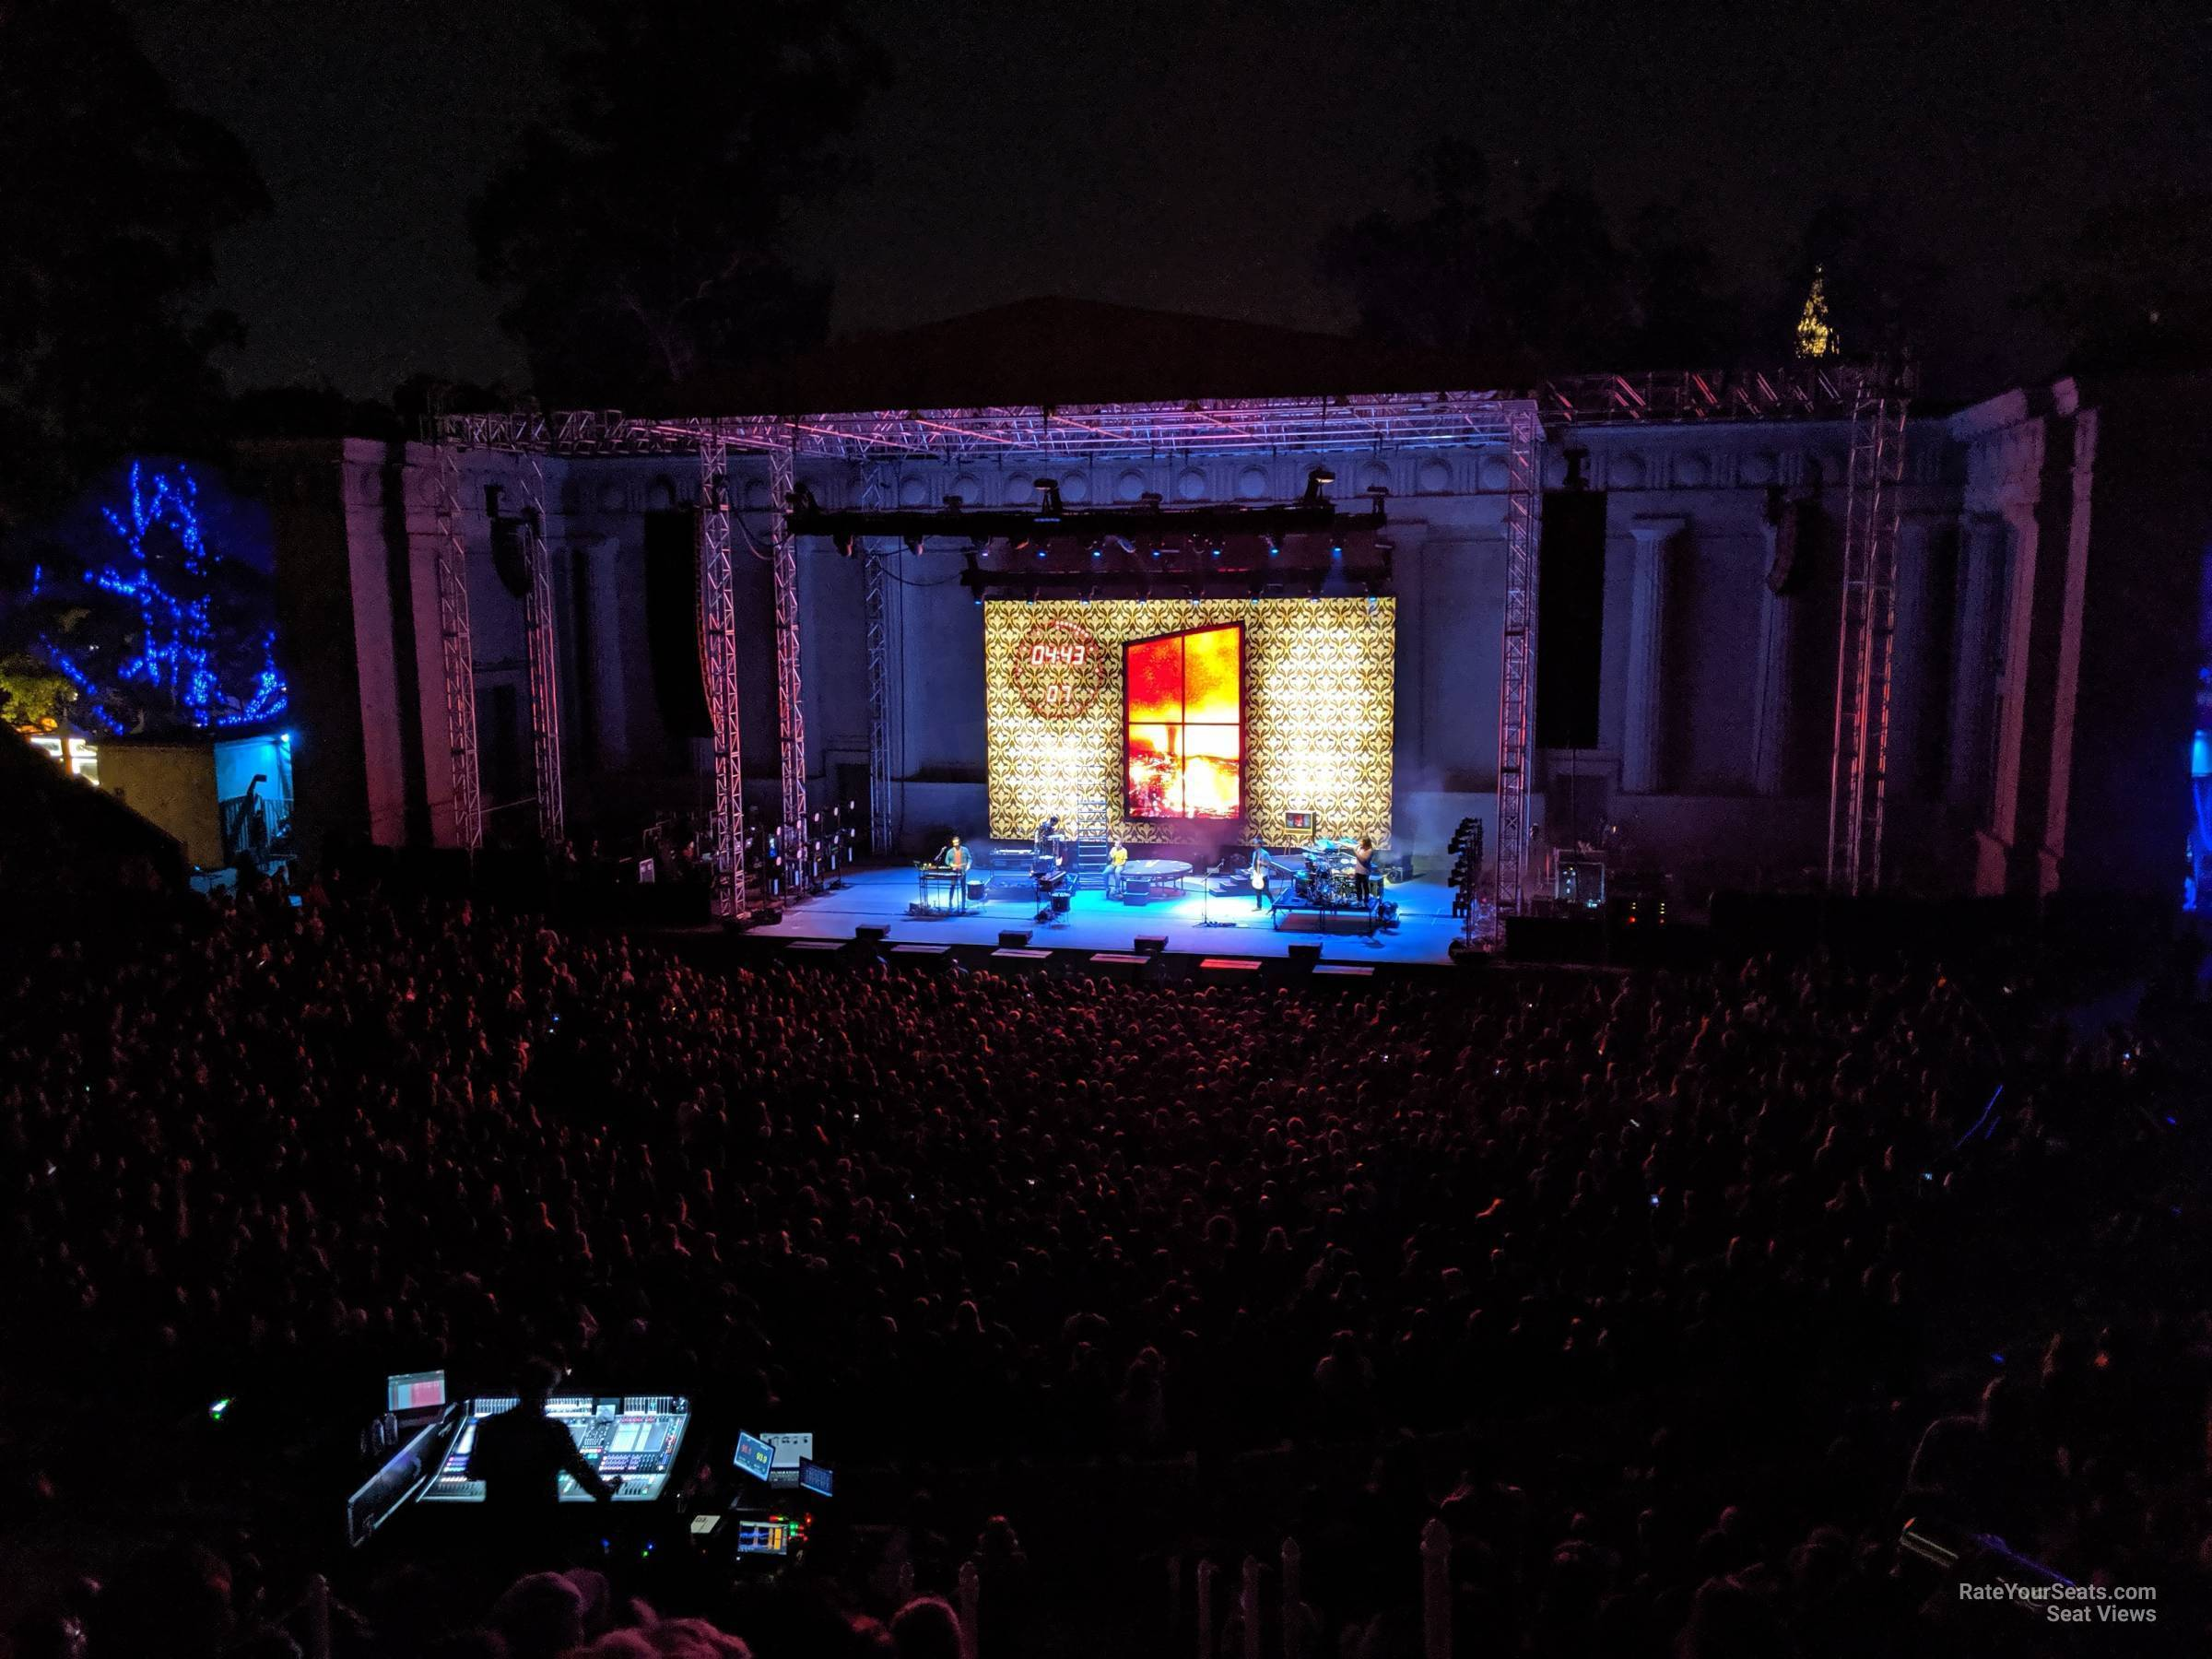 Concert Seat View for Greek Theatre - Berkeley Section 5, Row 20